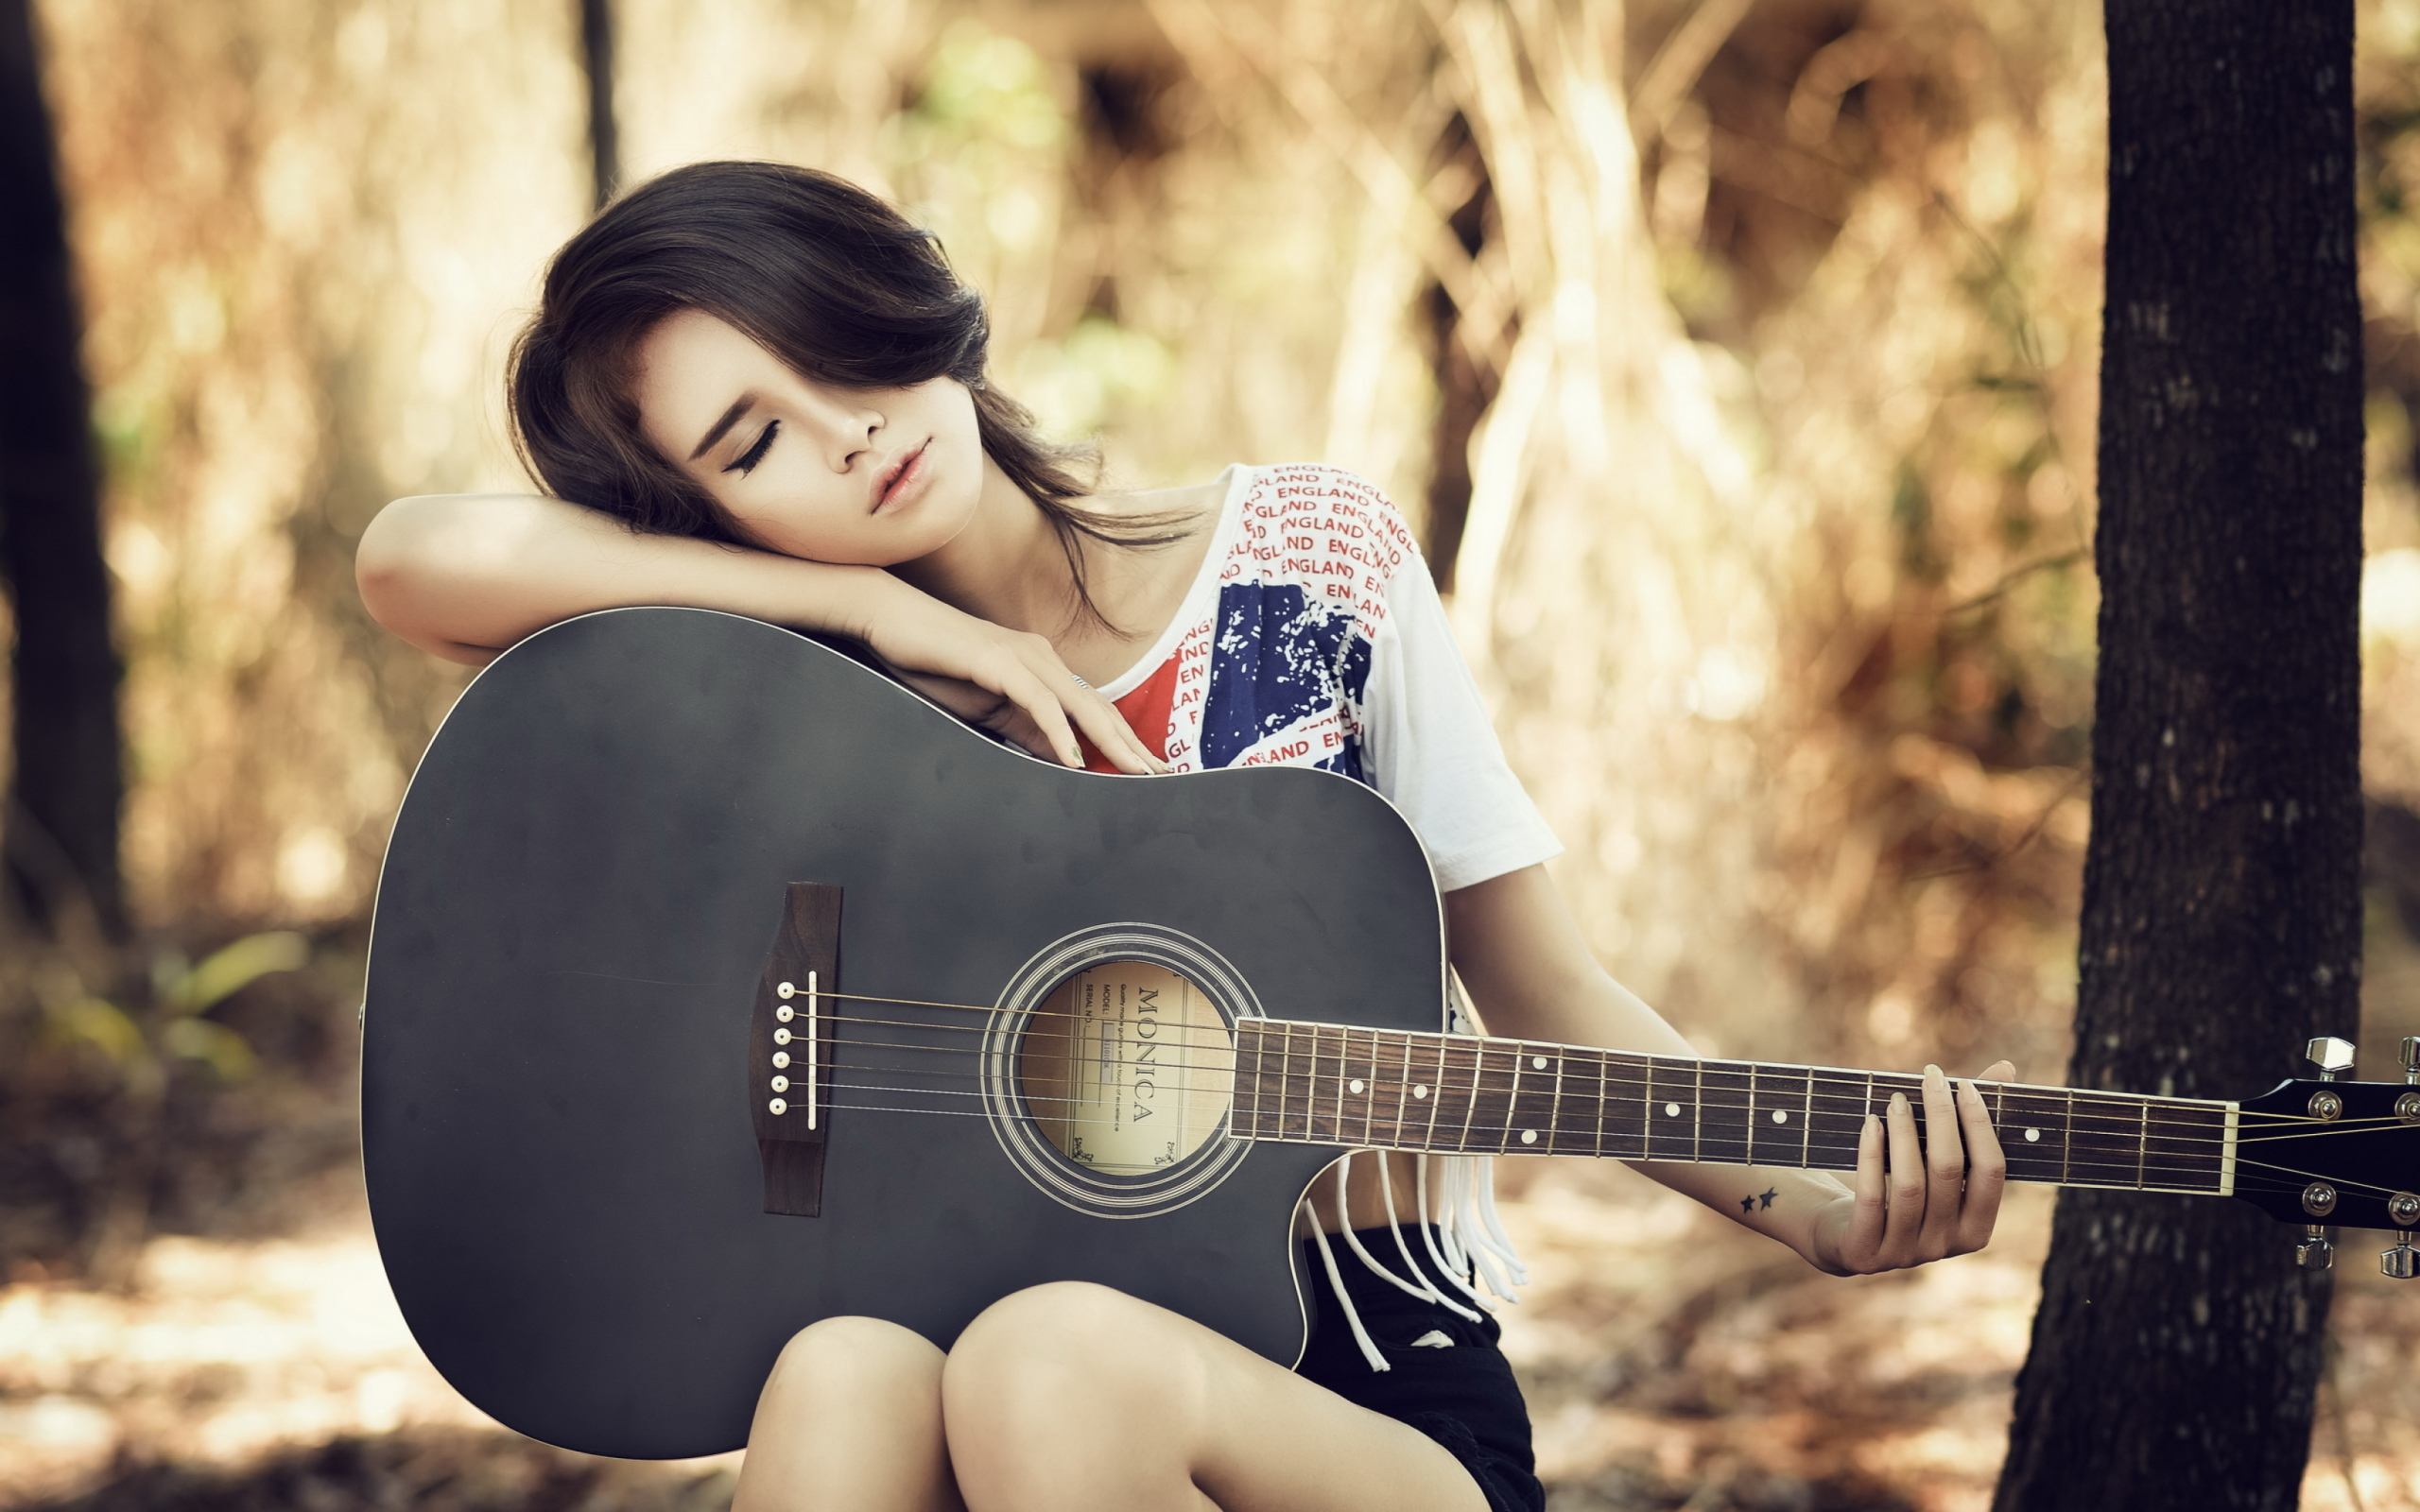 Cool And Stylish Profile Pictures For Facebook For Girls With Guitar Review Shopping Guide We Are Number One Where To Buy Cute Clothes